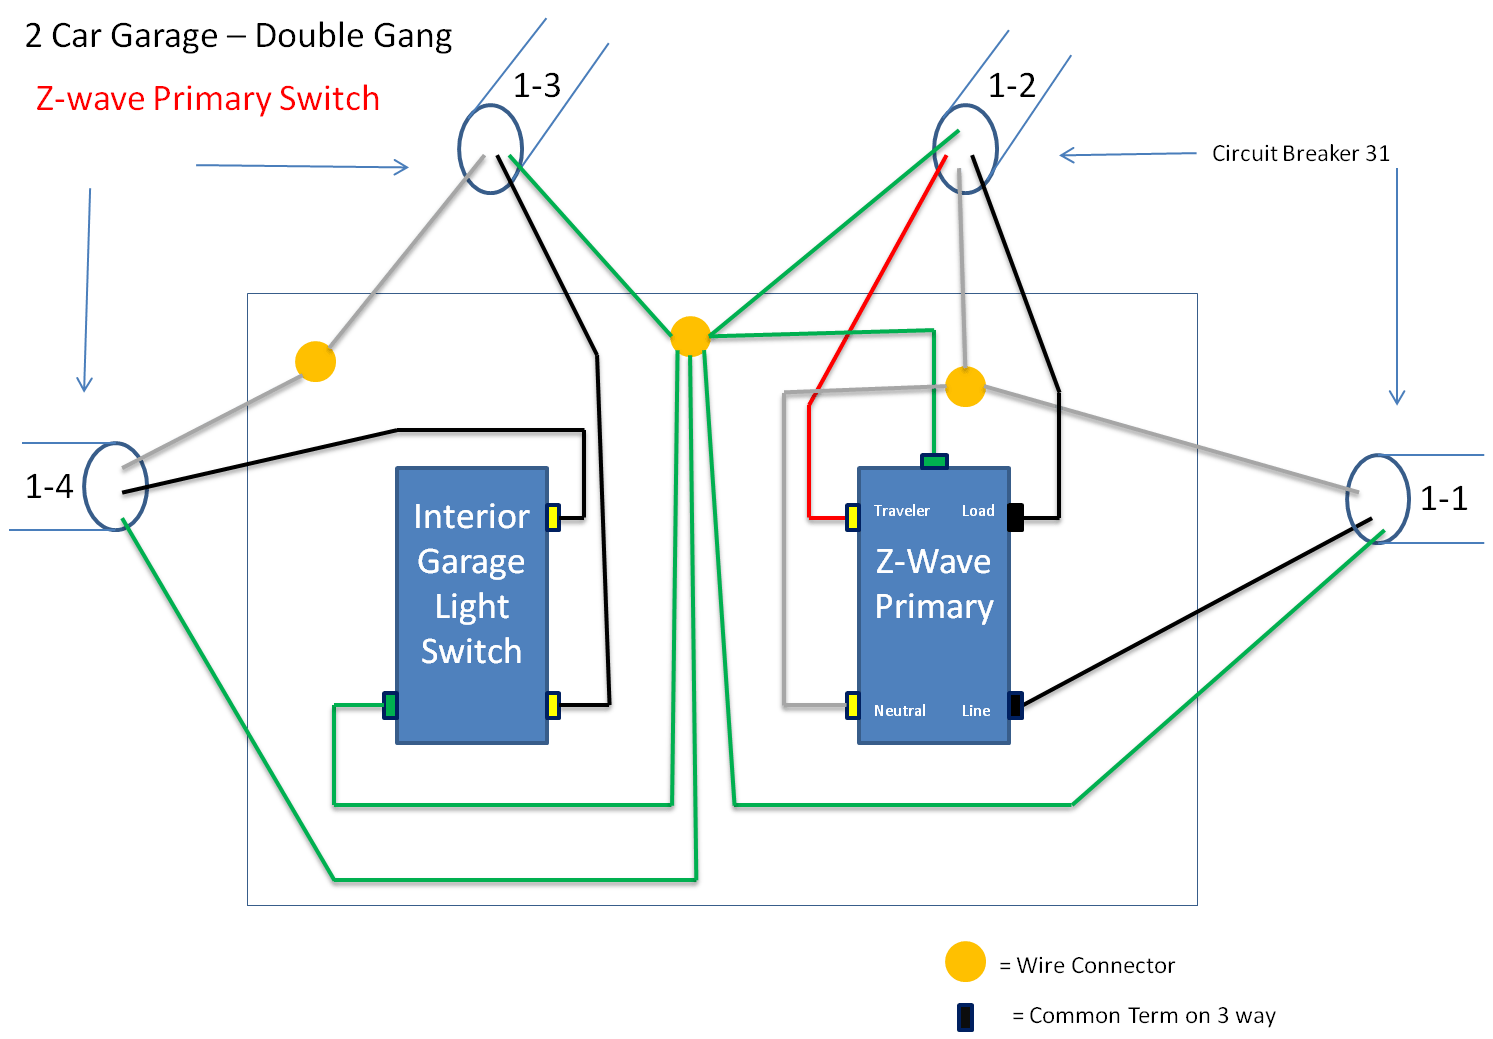 3 way switch diagram 2 lights 2003 dodge neon stereo wiring trying to wire in a ge 45614 z wave light kit